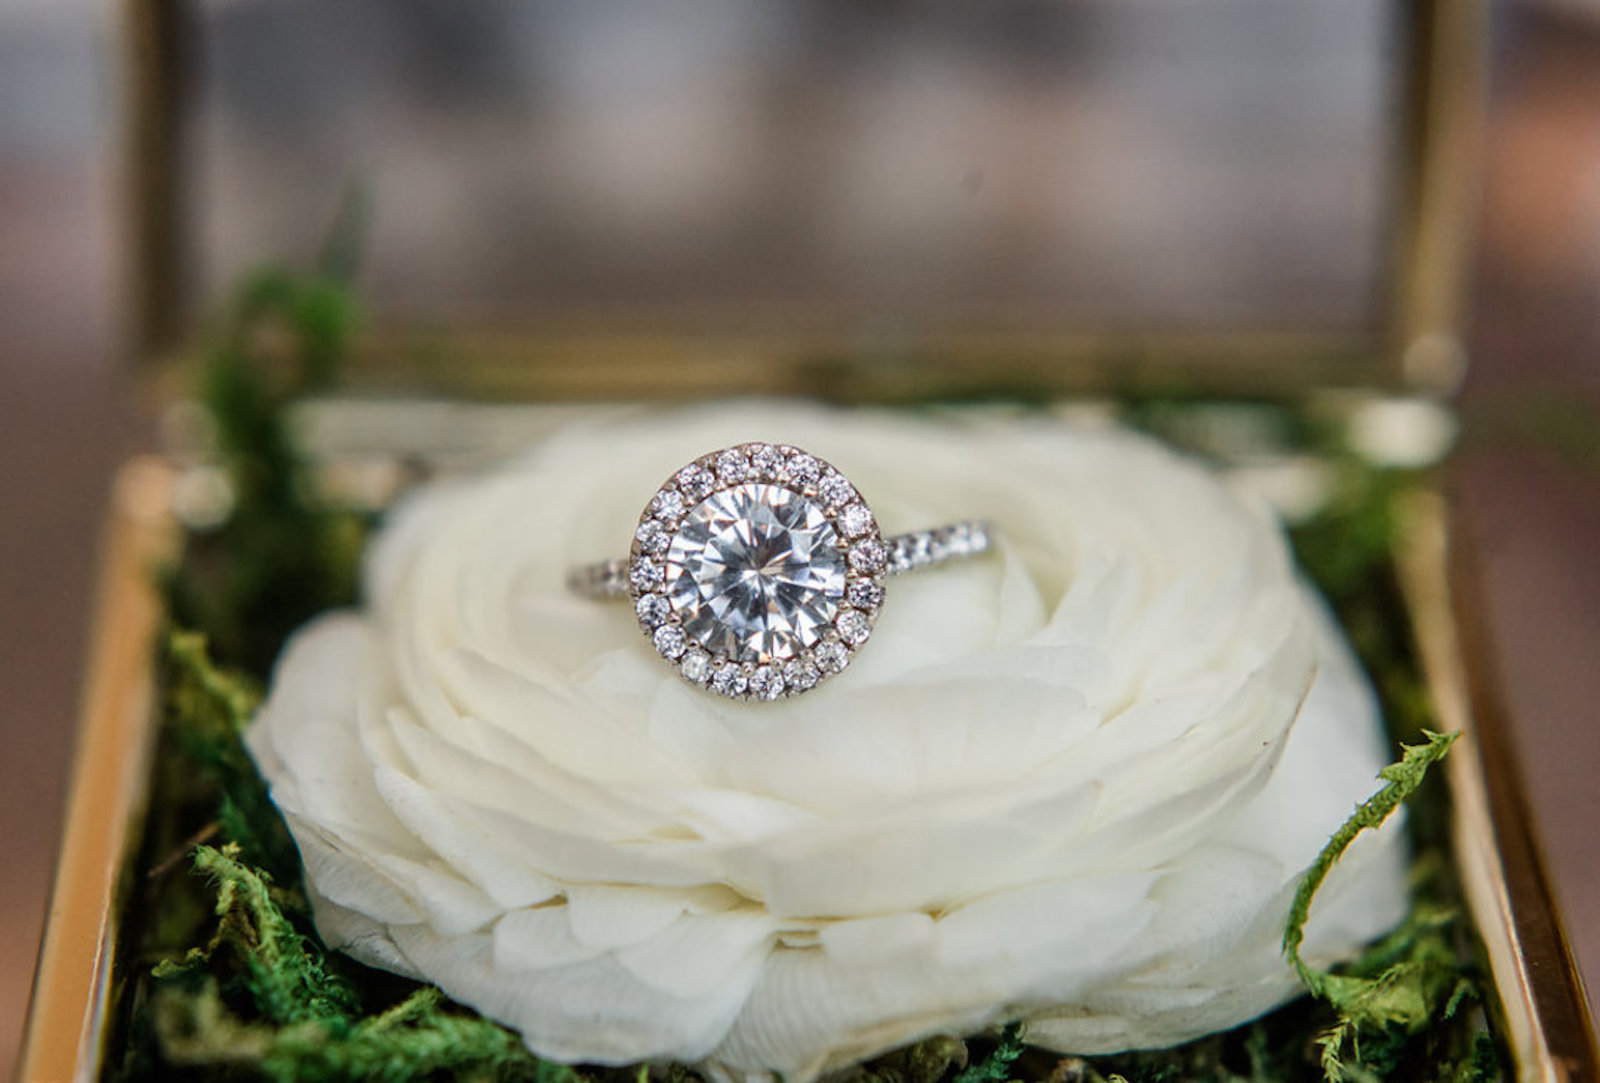 diamond engagement ring with a halo setting resting on a white ranunculus flower